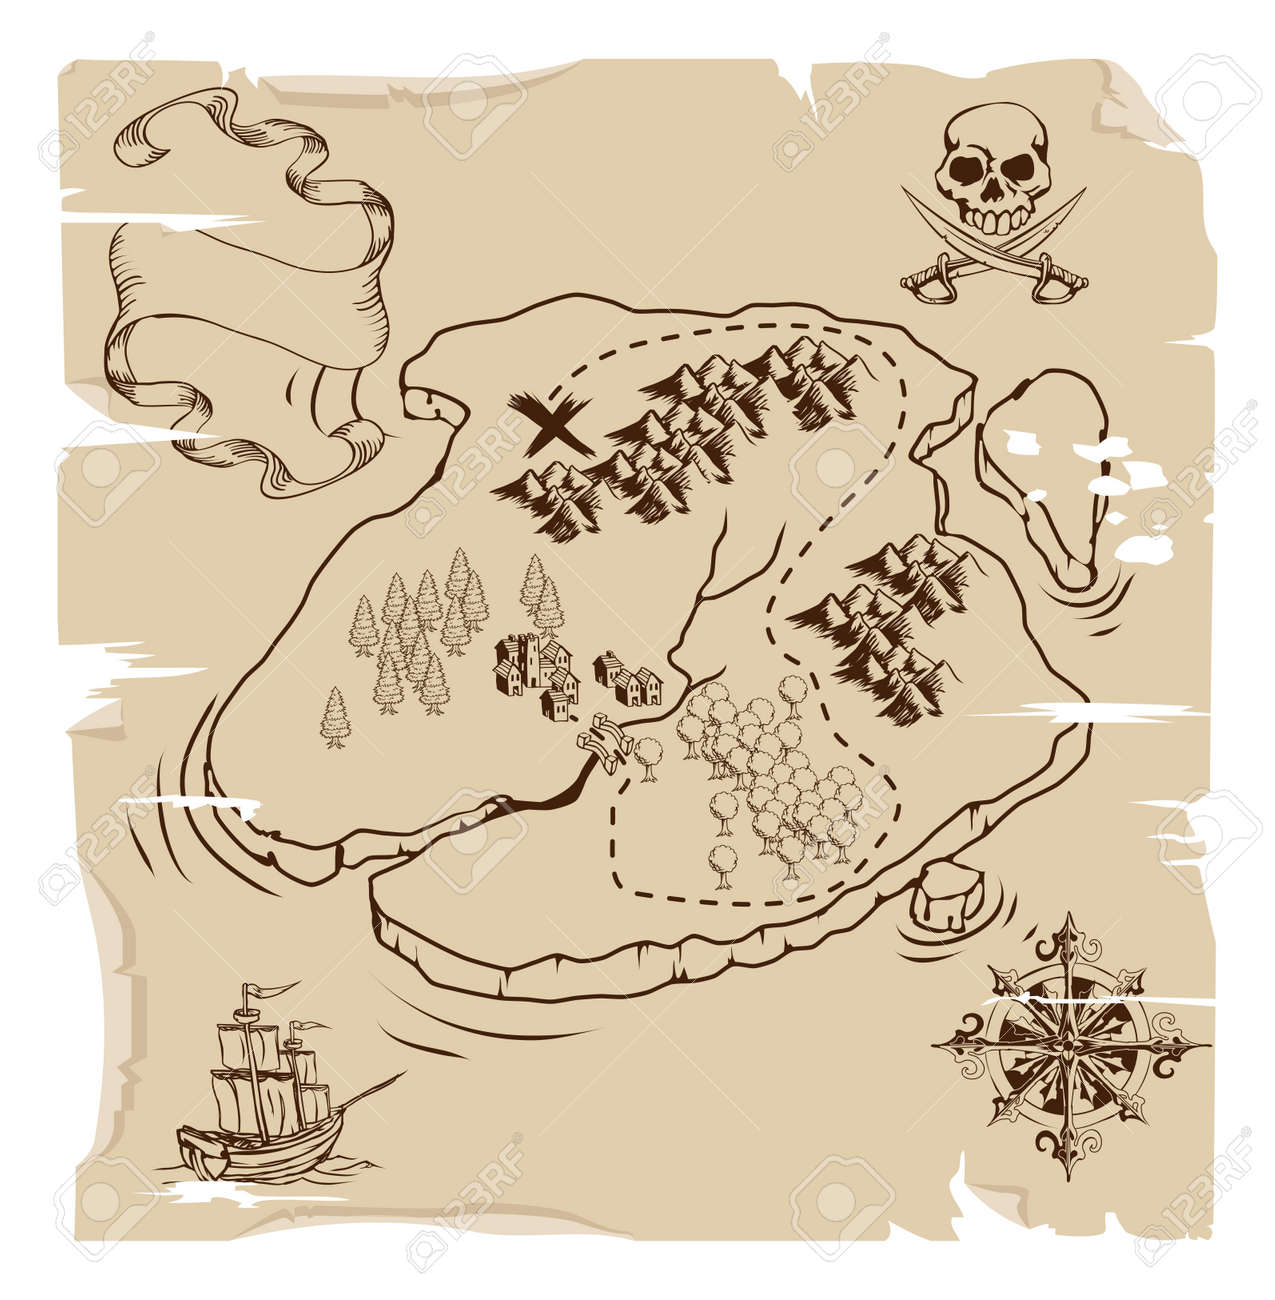 Illustration of an old fashioned pirate island treasue map Stock Vector - 10415881